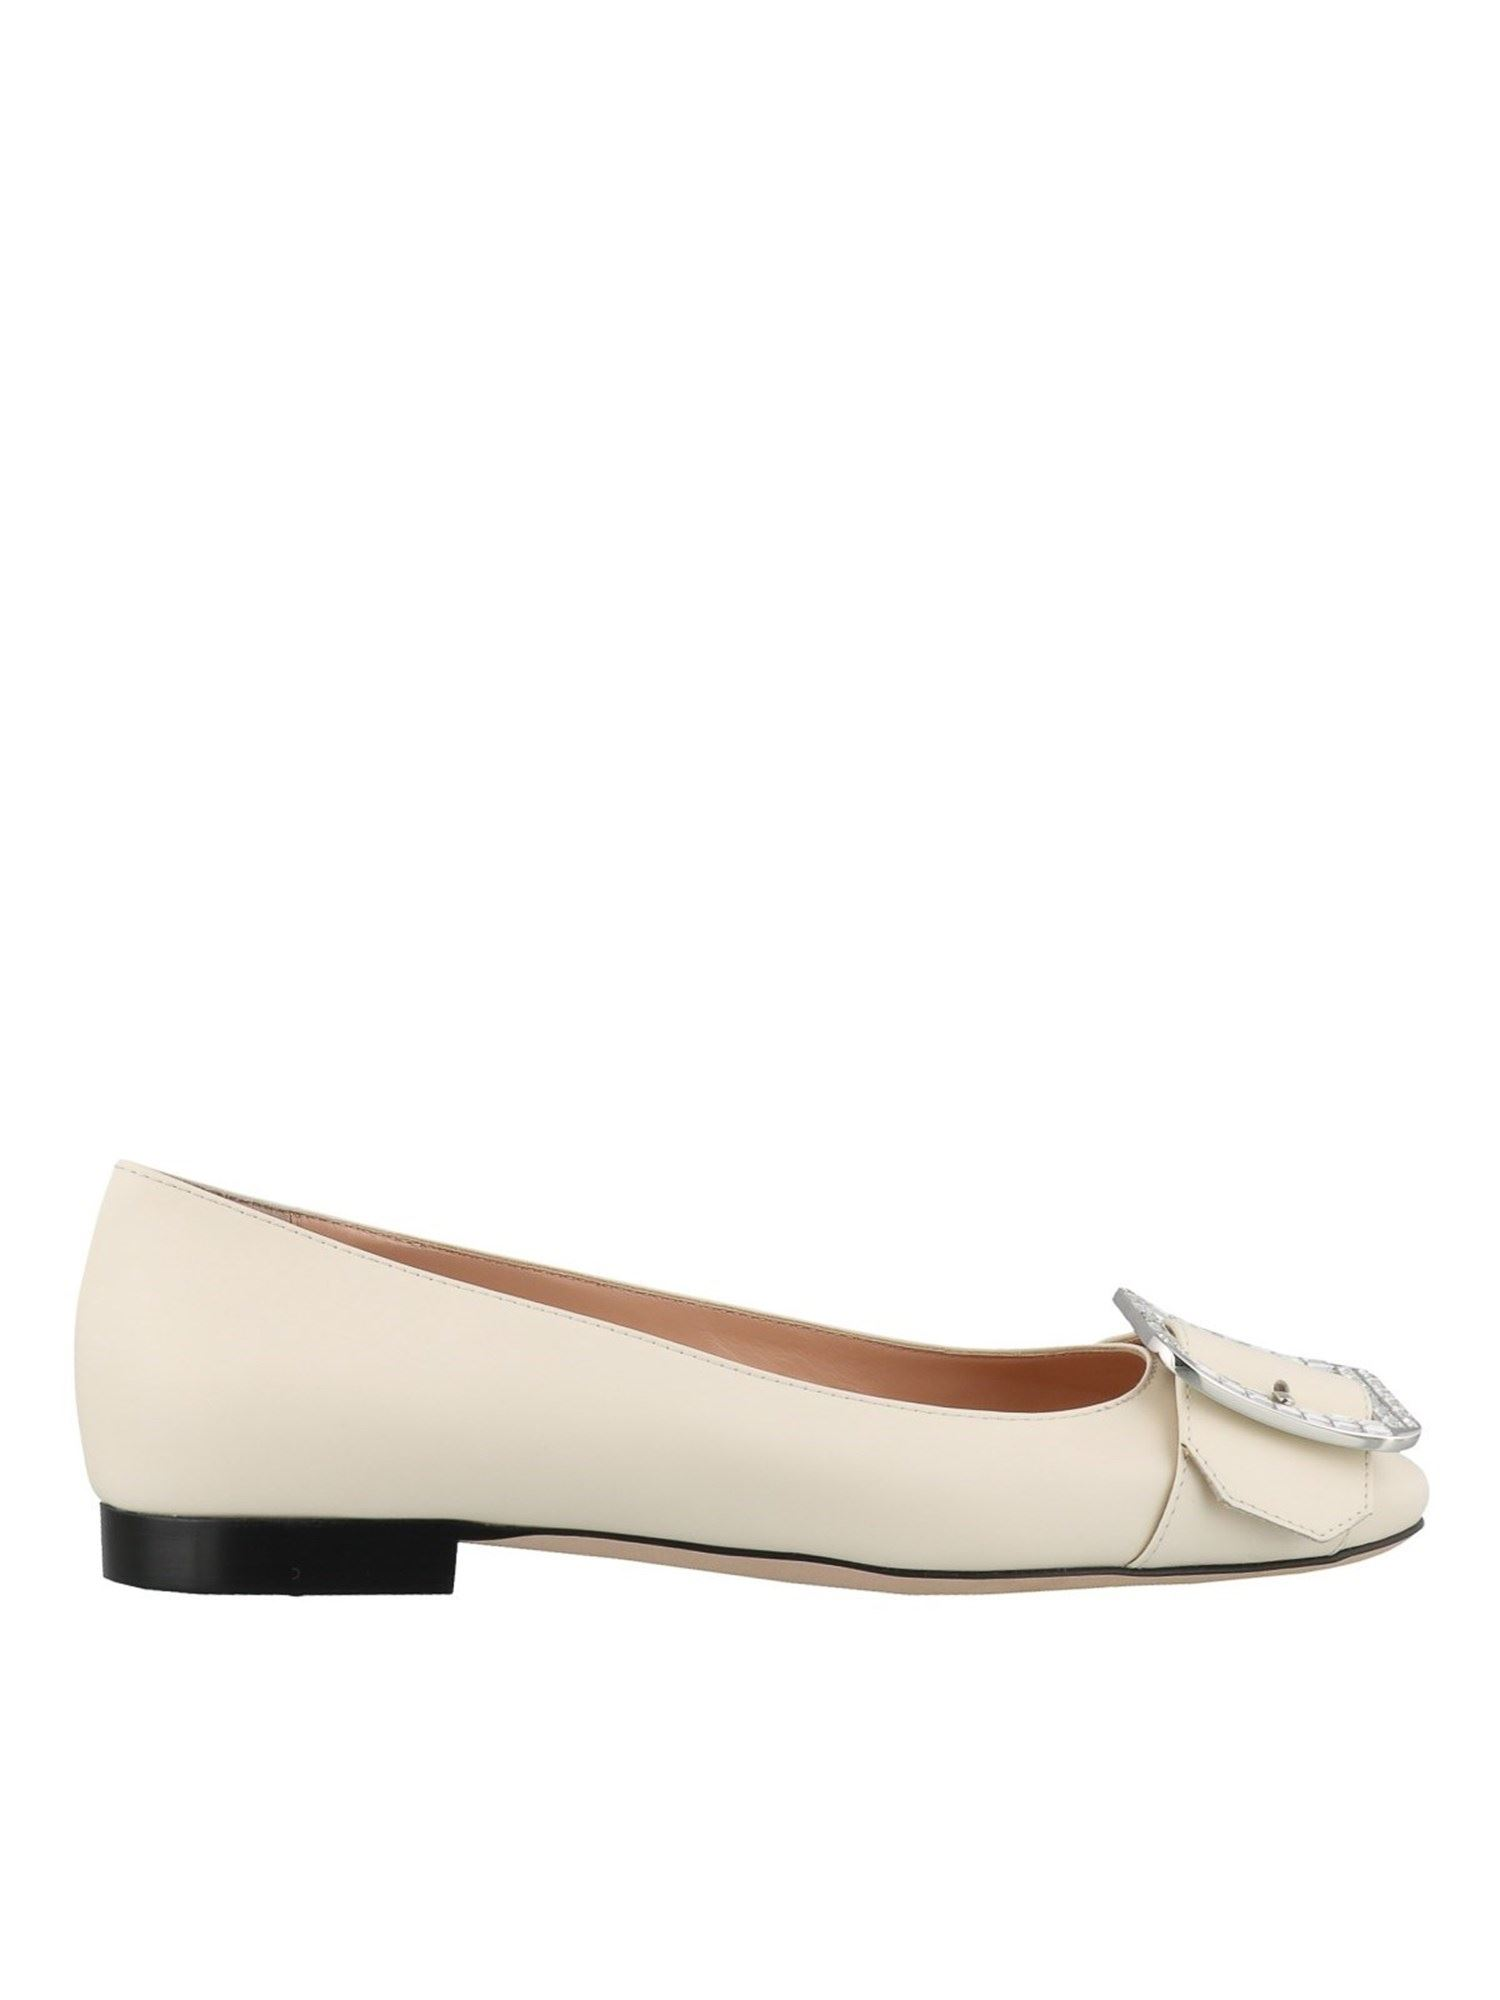 Bally JACKIE CRYSTAL BUCKLE FLATS IN CREAM COLOR